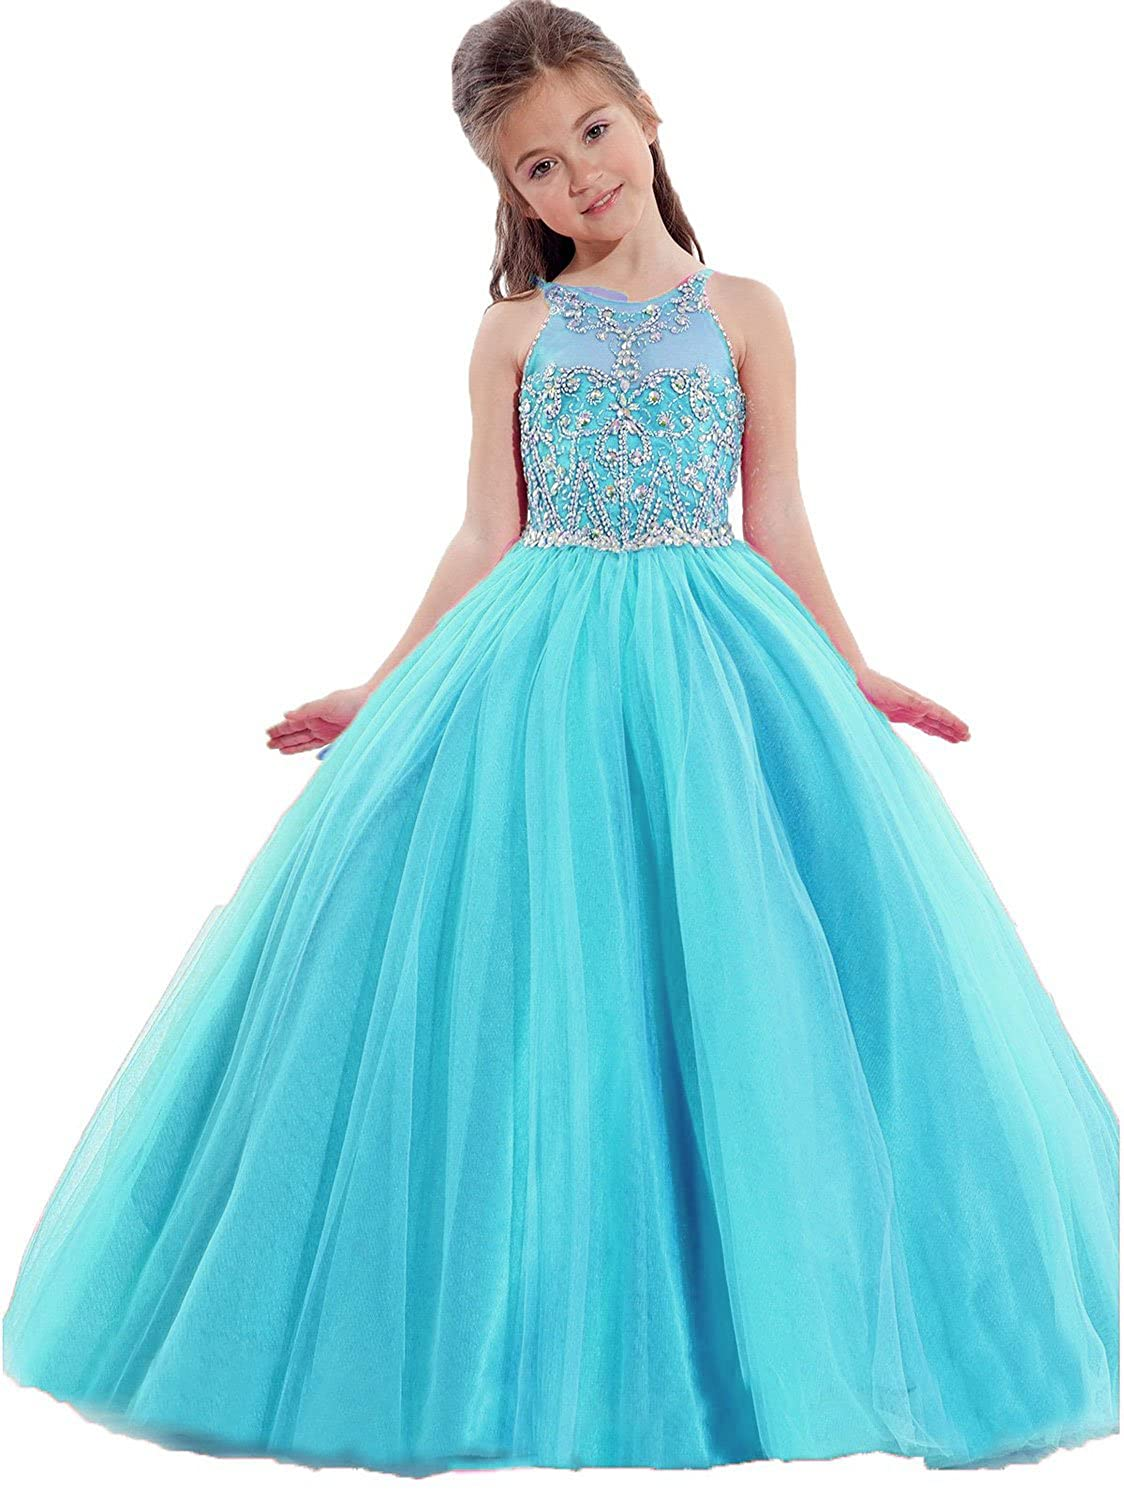 Amazon.com: Pageant Dresses Little Girls Birthday Party Dresses ...